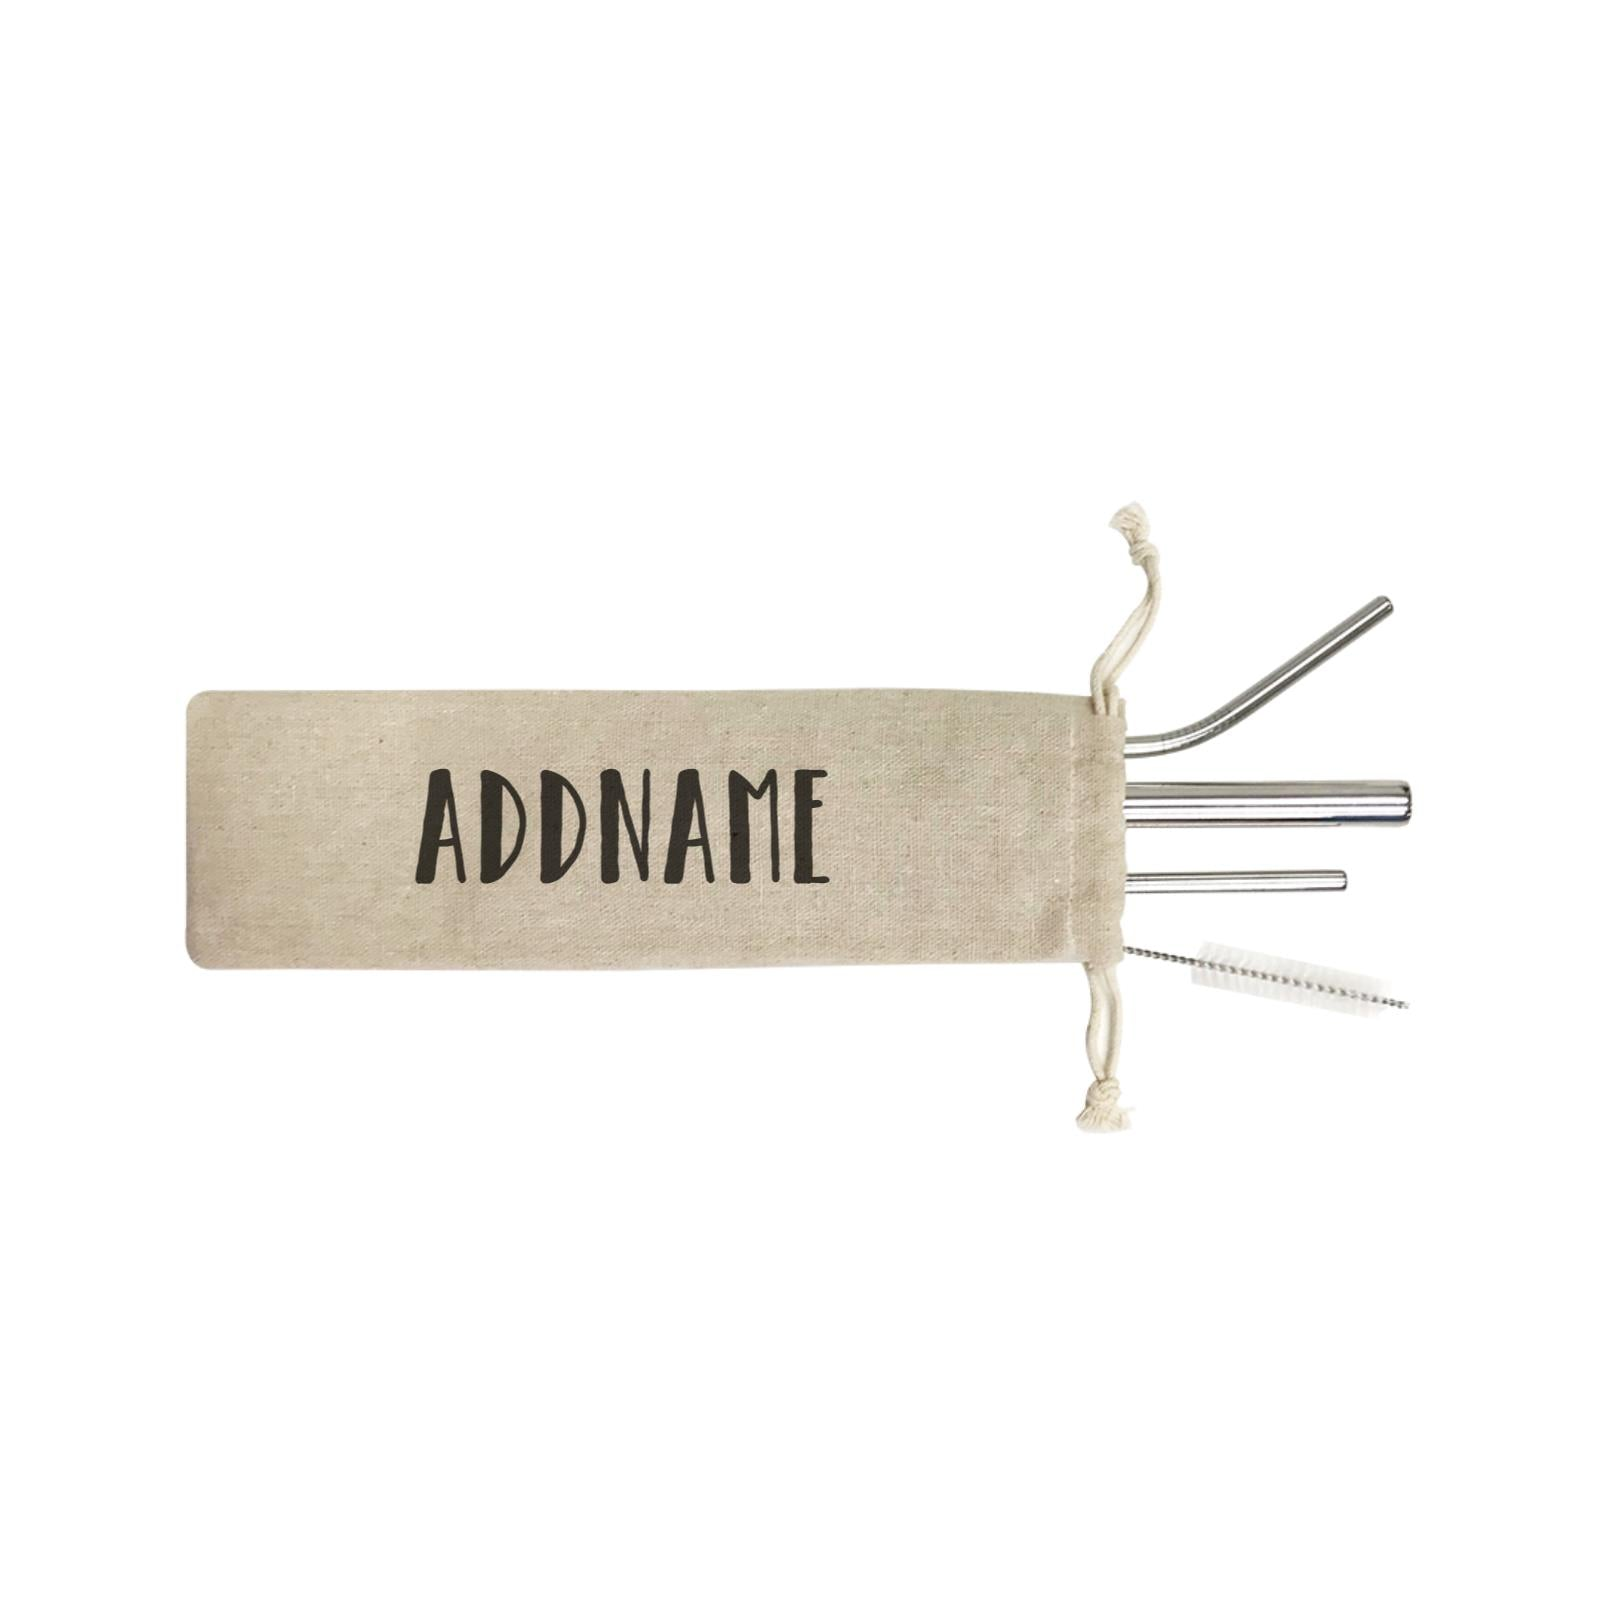 Basic Straw Catalina Addname SB 4-In-1 Stainless Steel Straw Set in Satchel